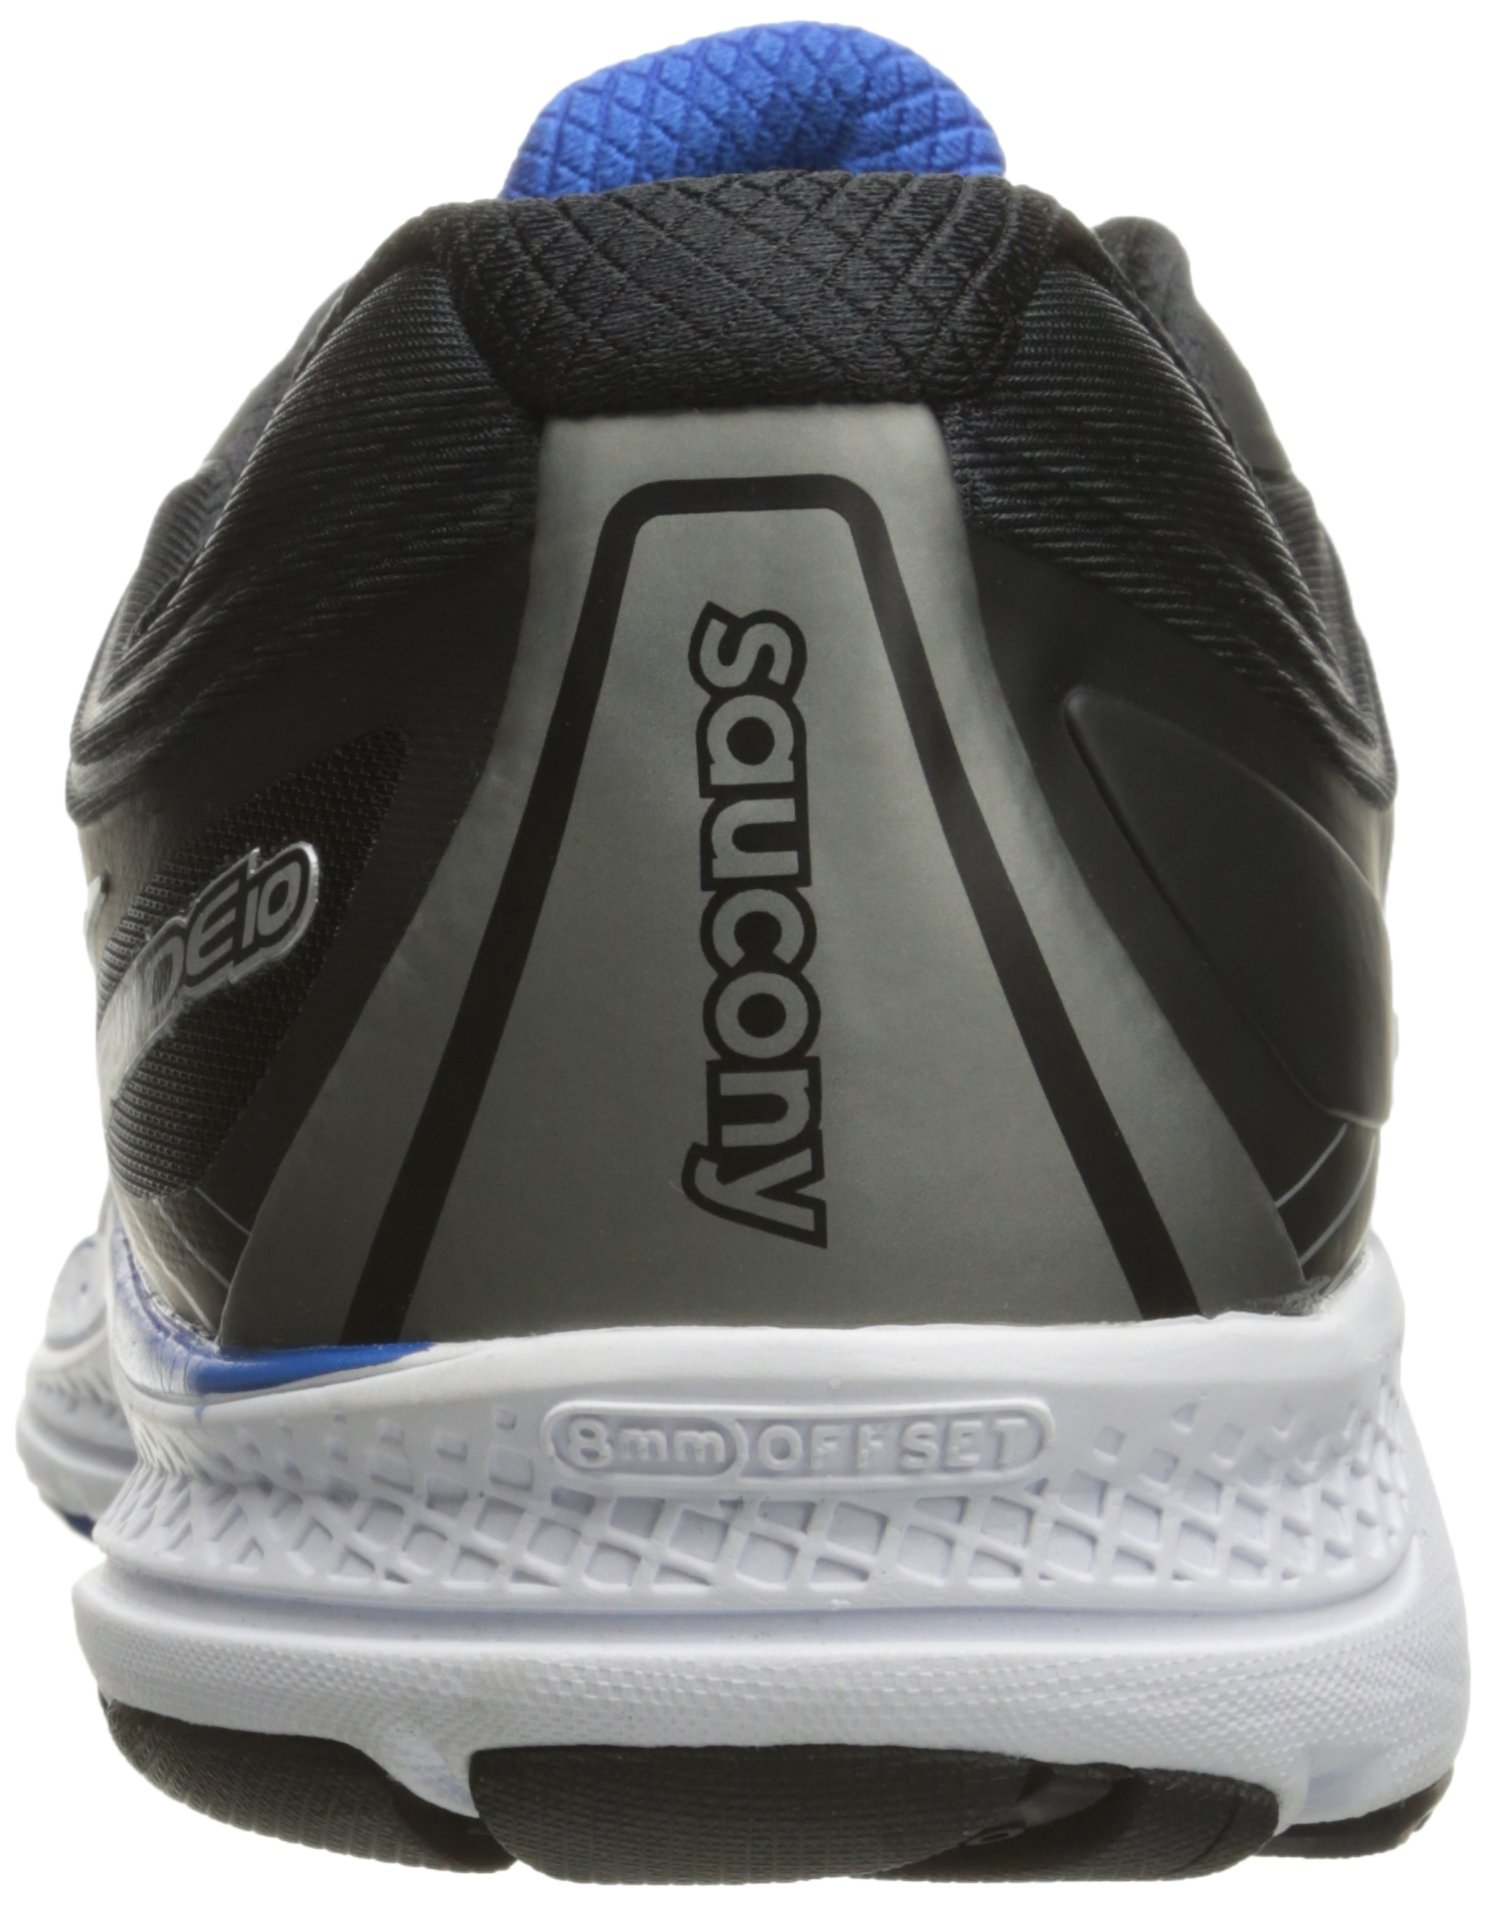 Saucony Men's Guide 10 Running Shoes, Grey Black, 14 D(M) US by Saucony (Image #2)